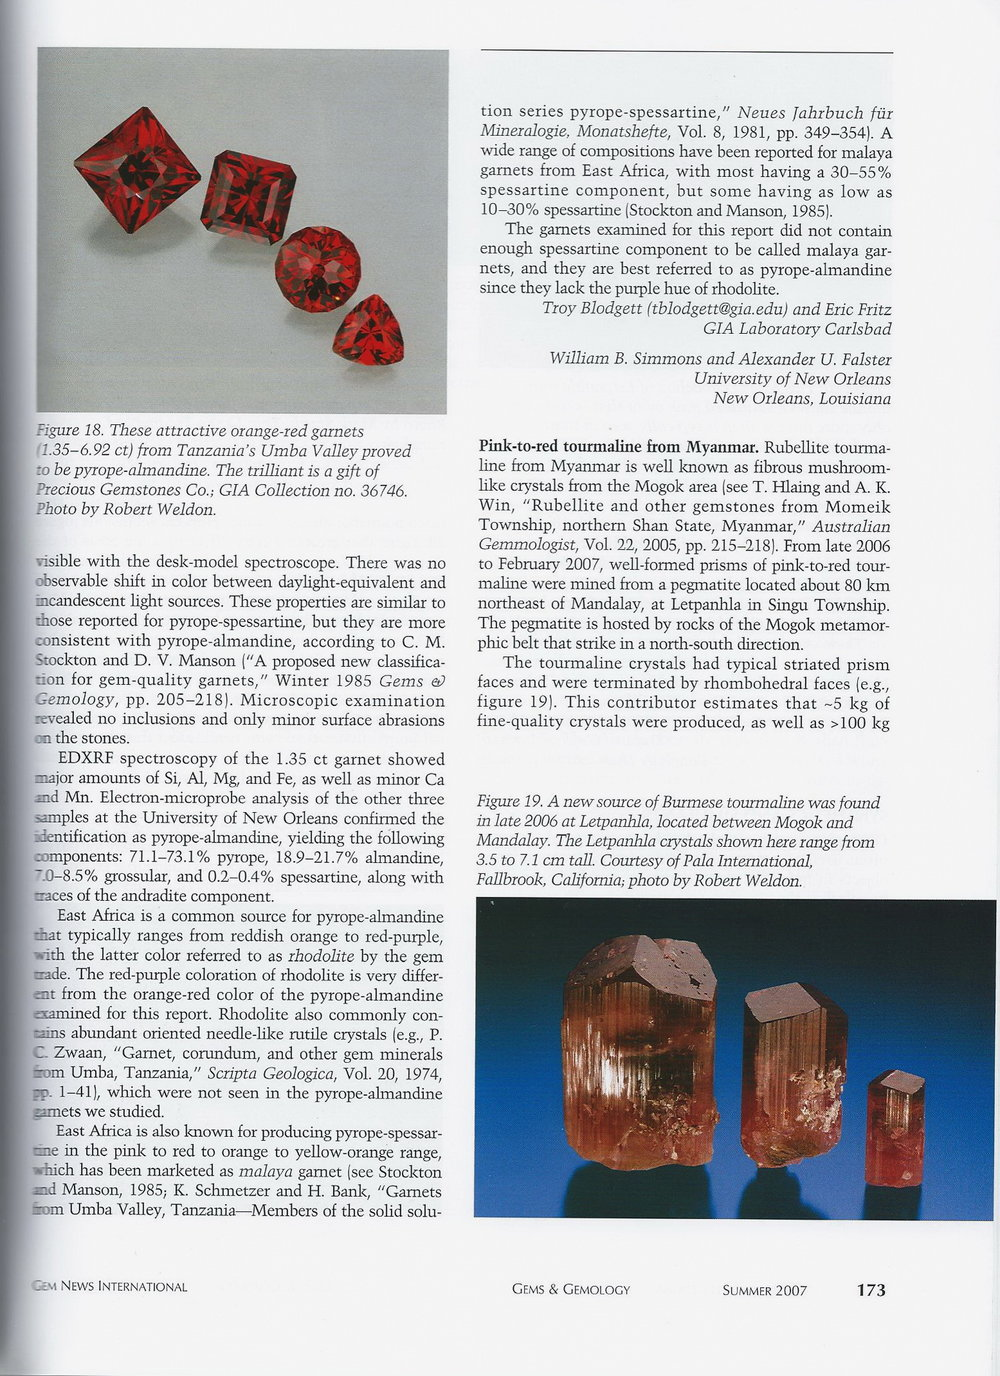 Gems & Gemology - Summer 2007 p.1